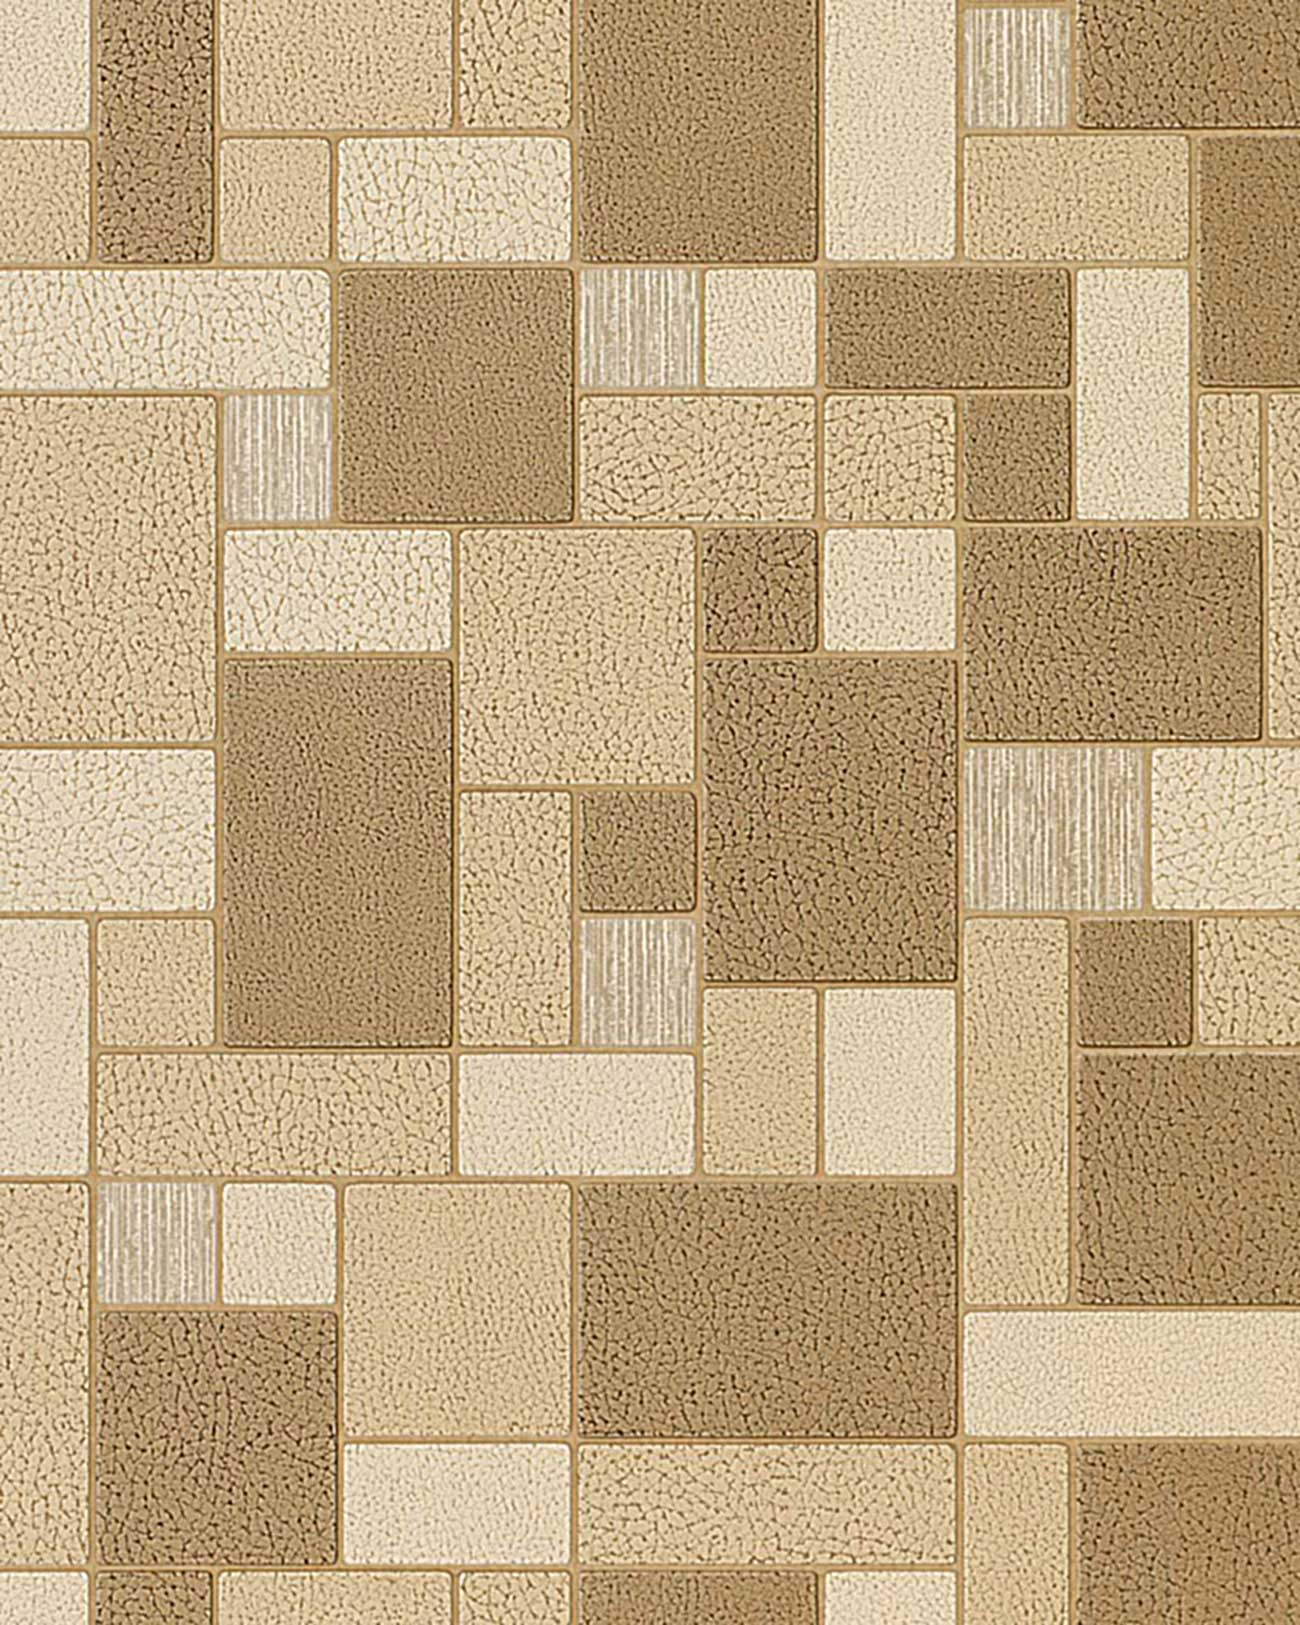 Wallpaper Wall Covering Vinyl EDEM 585 21 Modern Mosaic